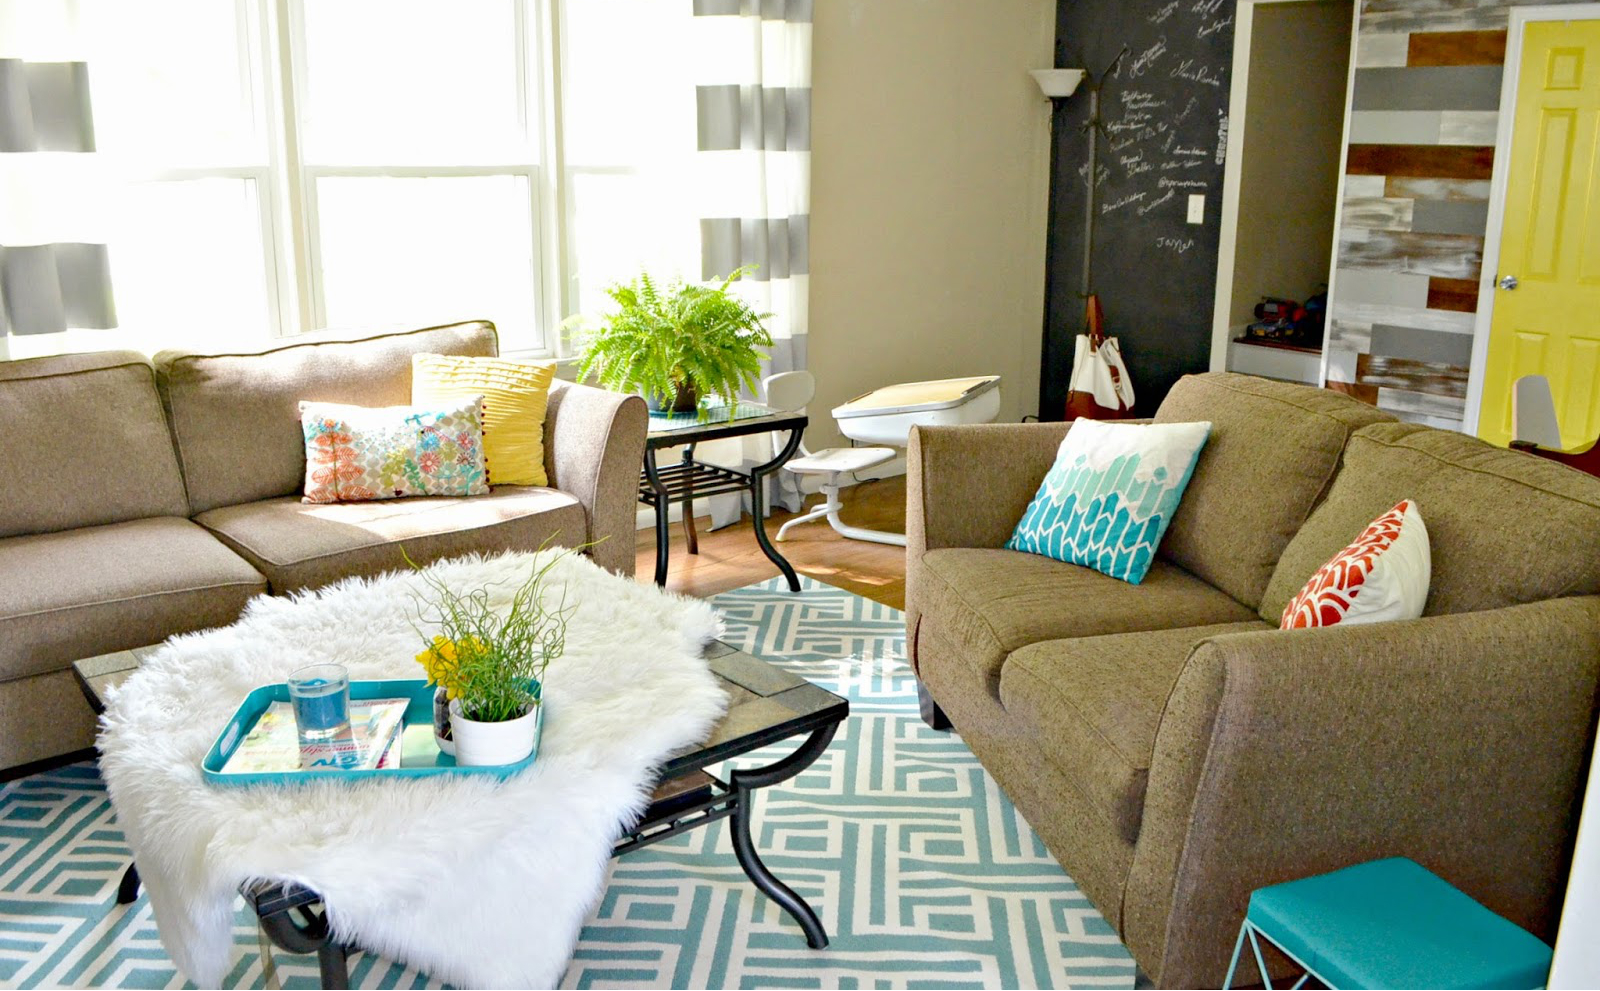 Interior Decor Home Decoration Ideas With Fabrics And Rugs The Reason Why Choose Outdoor Area Indoor